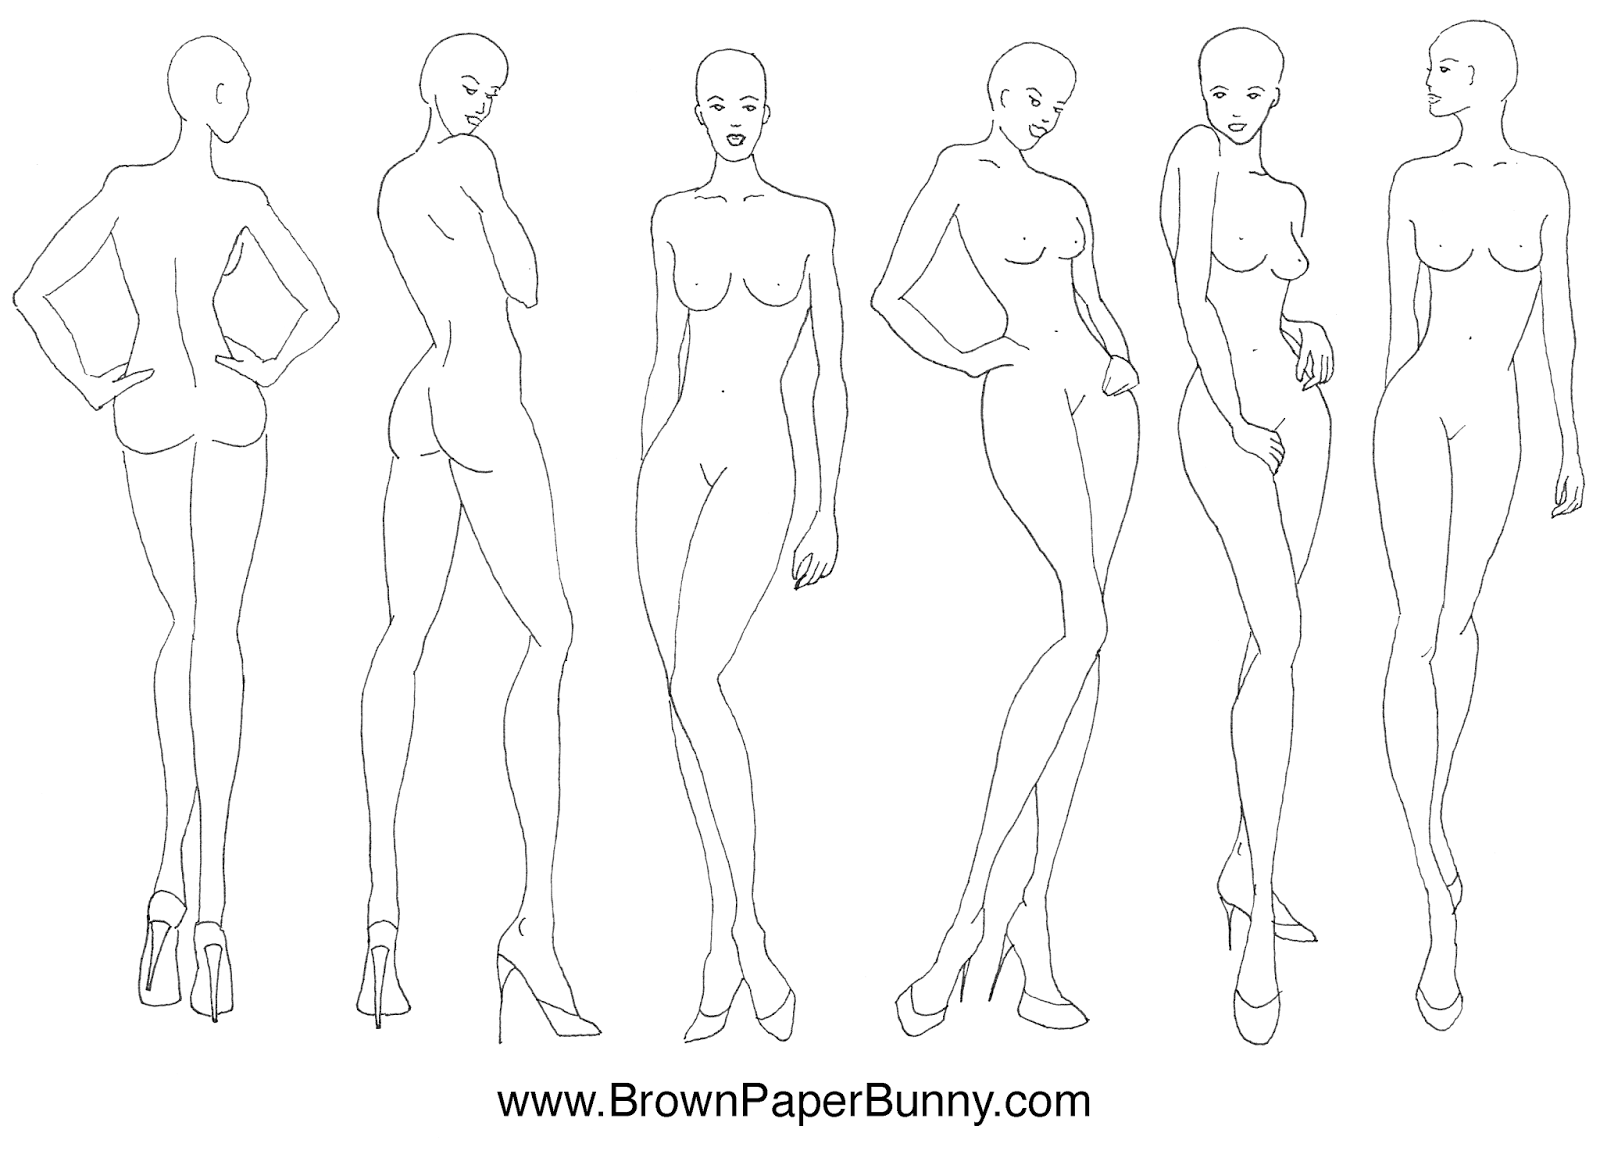 Fashion Illustration Templates | Fashion Illustration Croquis Brown Paper Bunny Studio